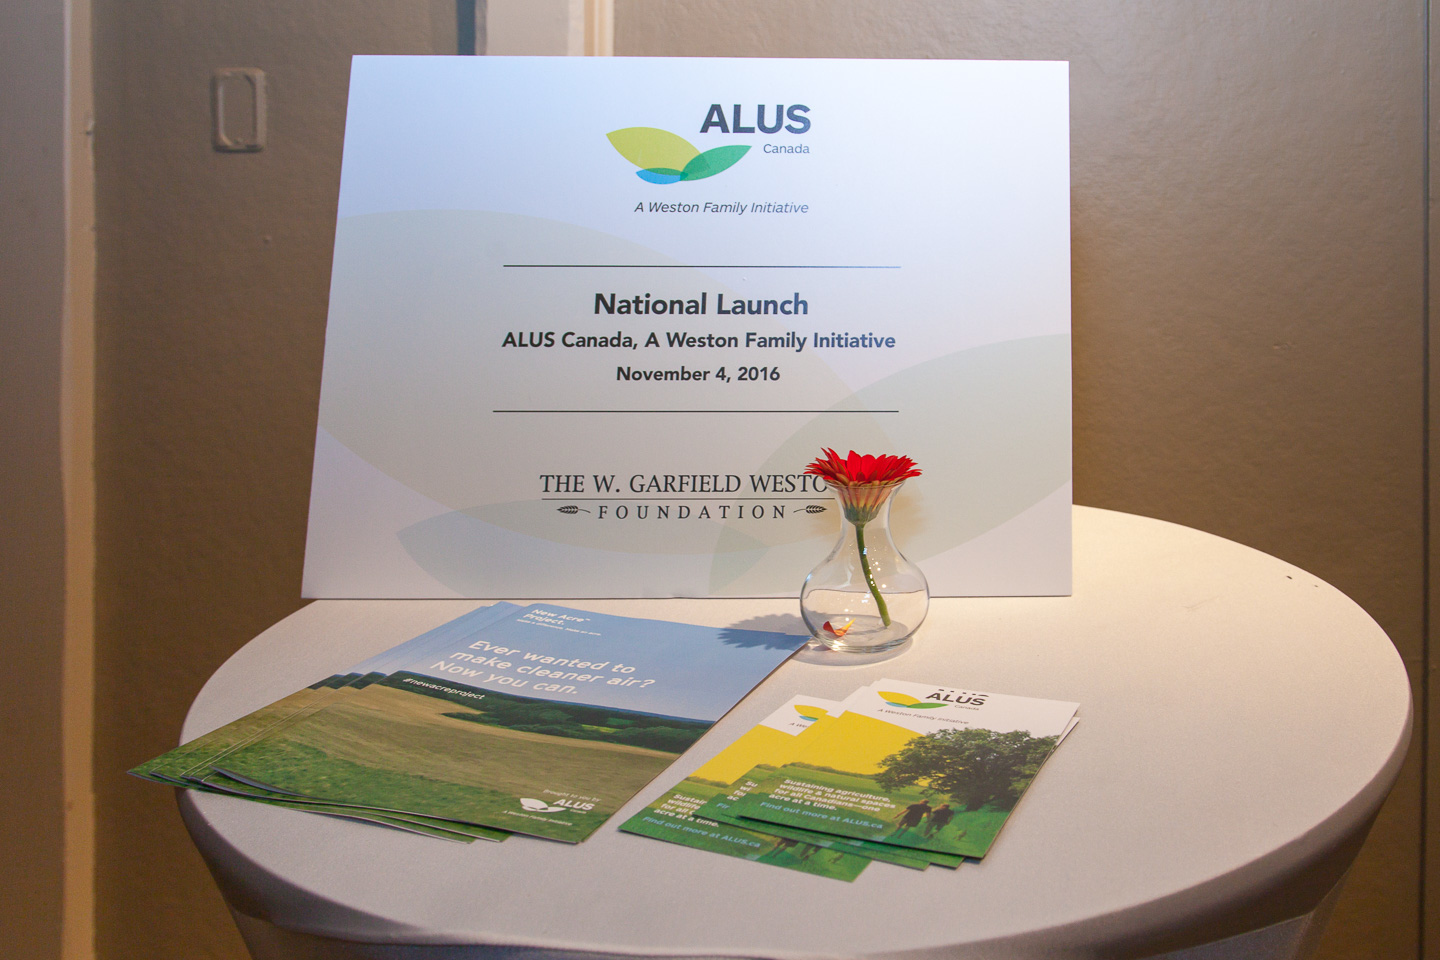 Welcome to the national launch of ALUS Canada, A Weston Family Initiative, on November 4, 2016, opening day of The Royal Agricultural Winter Fair, in Toronto.